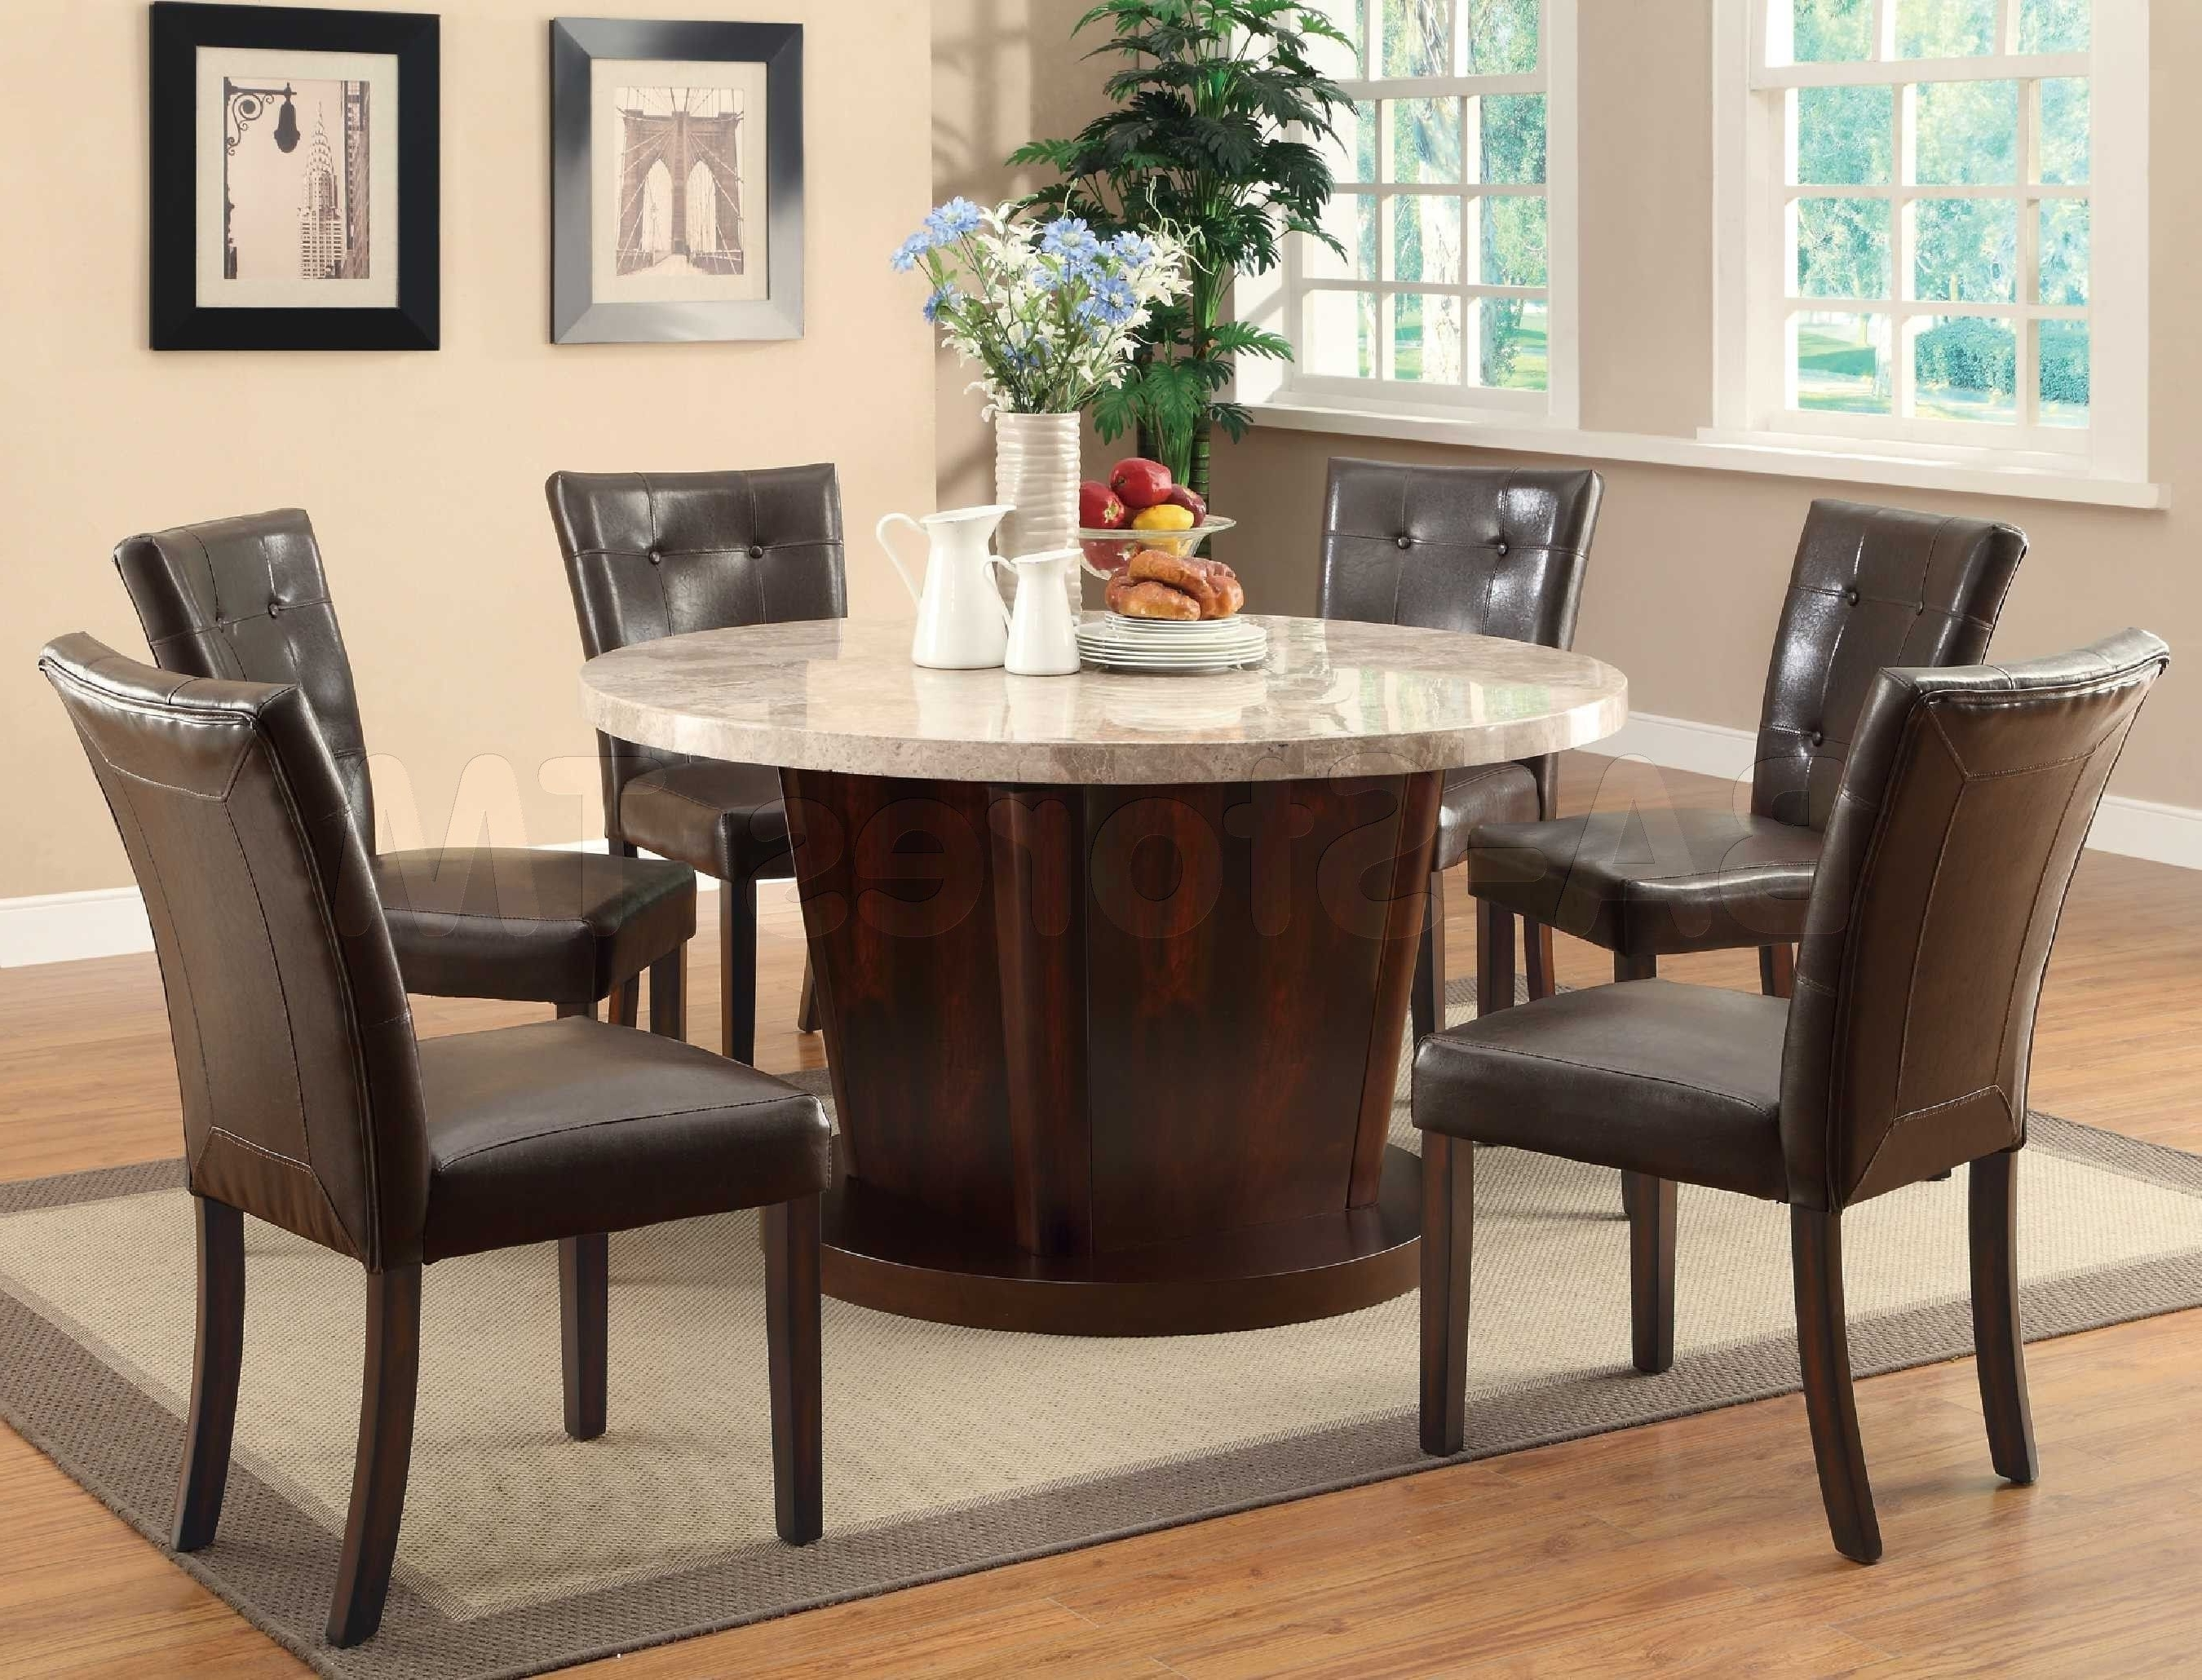 Norwood 7 Piece Rectangular Extension Dining Sets With Bench, Host & Side Chairs for Most Recently Released Low-Cost Dining Room Tables. Dishy Room Tables Cheap Prices Dining